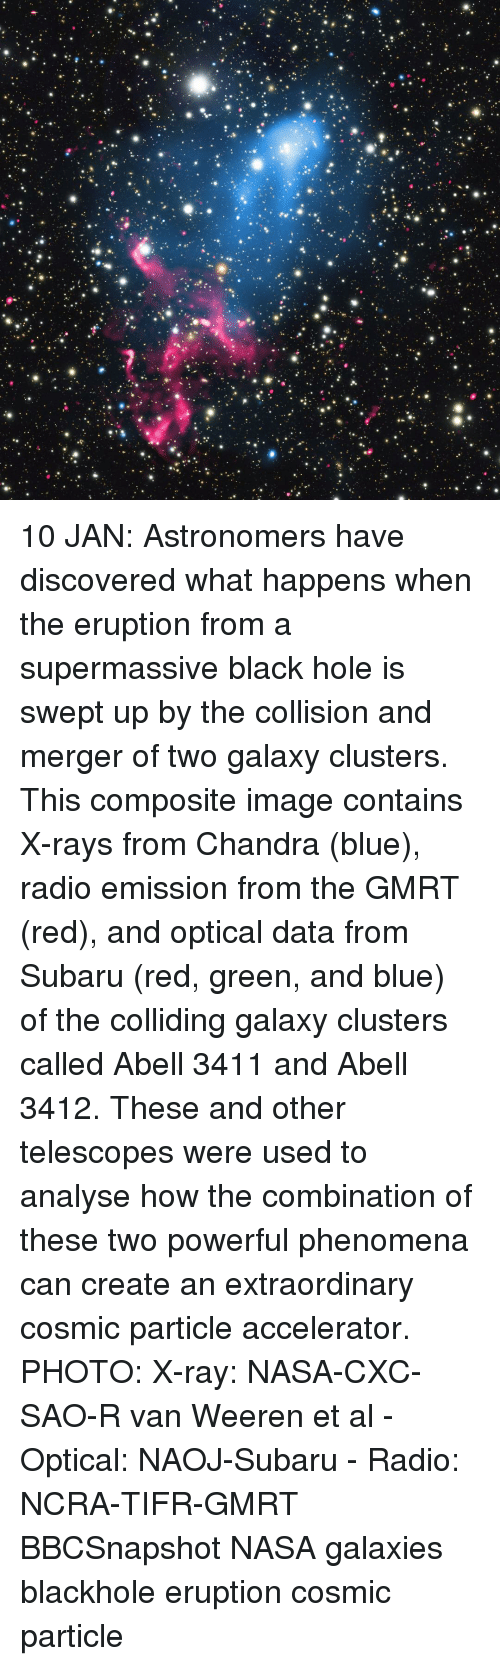 Memes, Nasa, and Radio: ,'痴. 10 JAN: Astronomers have discovered what happens when the eruption from a supermassive black hole is swept up by the collision and merger of two galaxy clusters. This composite image contains X-rays from Chandra (blue), radio emission from the GMRT (red), and optical data from Subaru (red, green, and blue) of the colliding galaxy clusters called Abell 3411 and Abell 3412. These and other telescopes were used to analyse how the combination of these two powerful phenomena can create an extraordinary cosmic particle accelerator. PHOTO: X-ray: NASA-CXC-SAO-R van Weeren et al - Optical: NAOJ-Subaru - Radio: NCRA-TIFR-GMRT BBCSnapshot NASA galaxies blackhole eruption cosmic particle